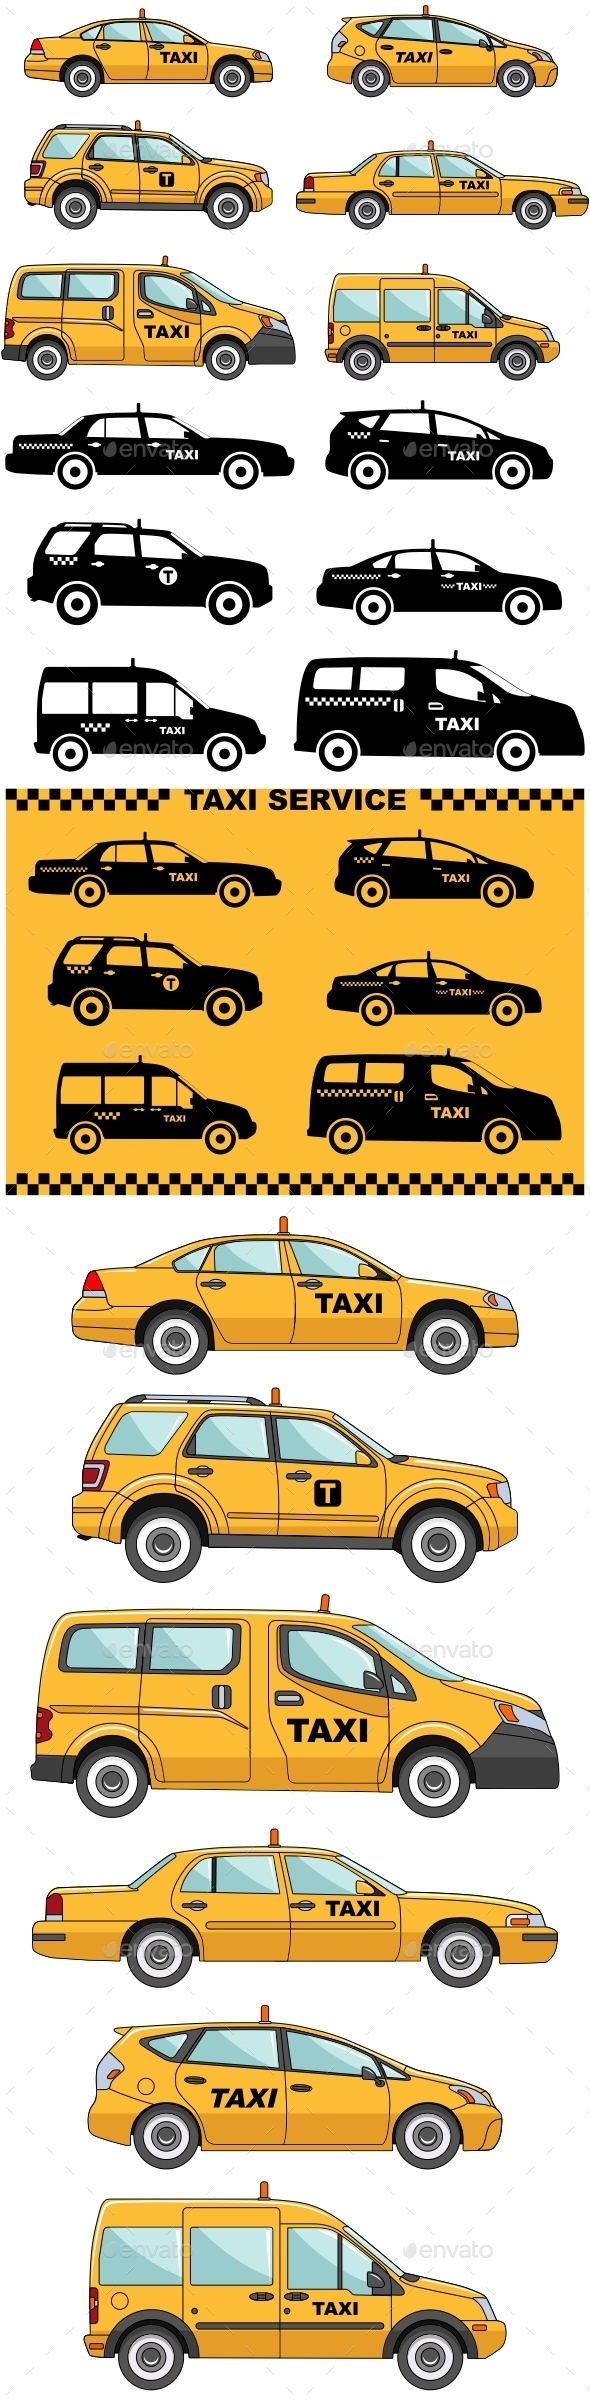 Taxi Cars On A White And Yellow Background - Man-made Objects Objects